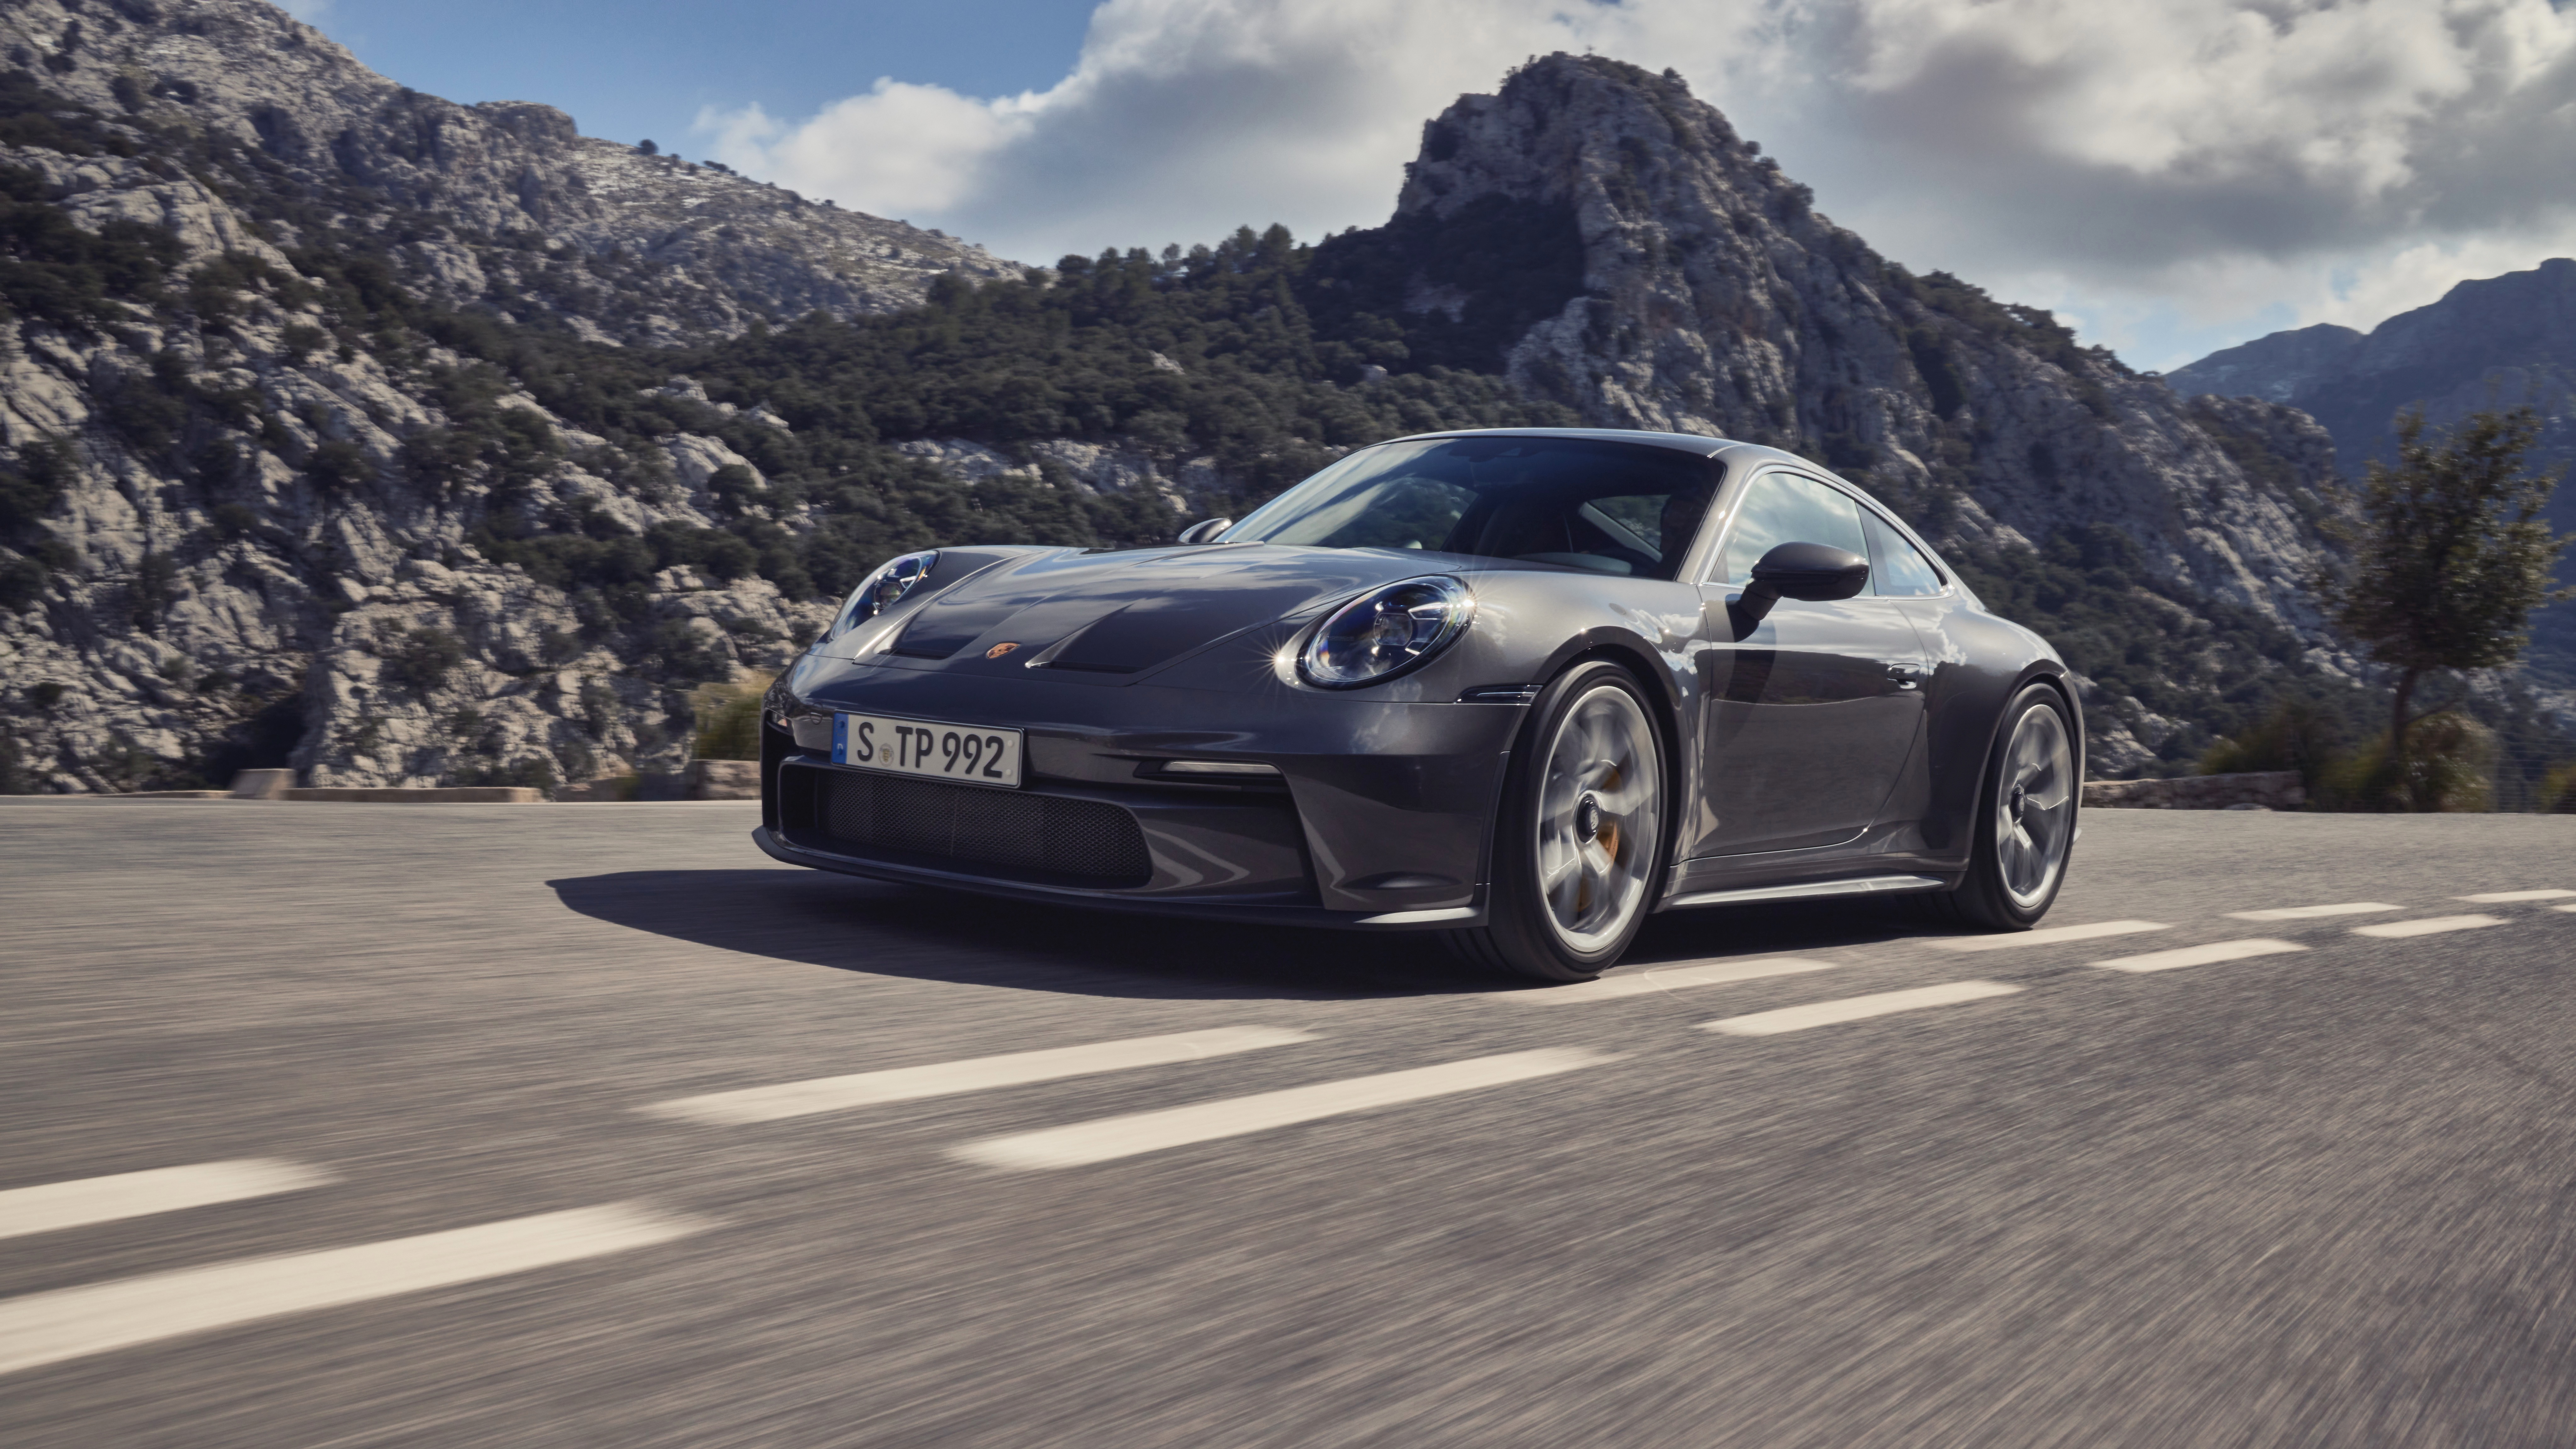 This Week in Cars: 911 GT3 Gets New Trim